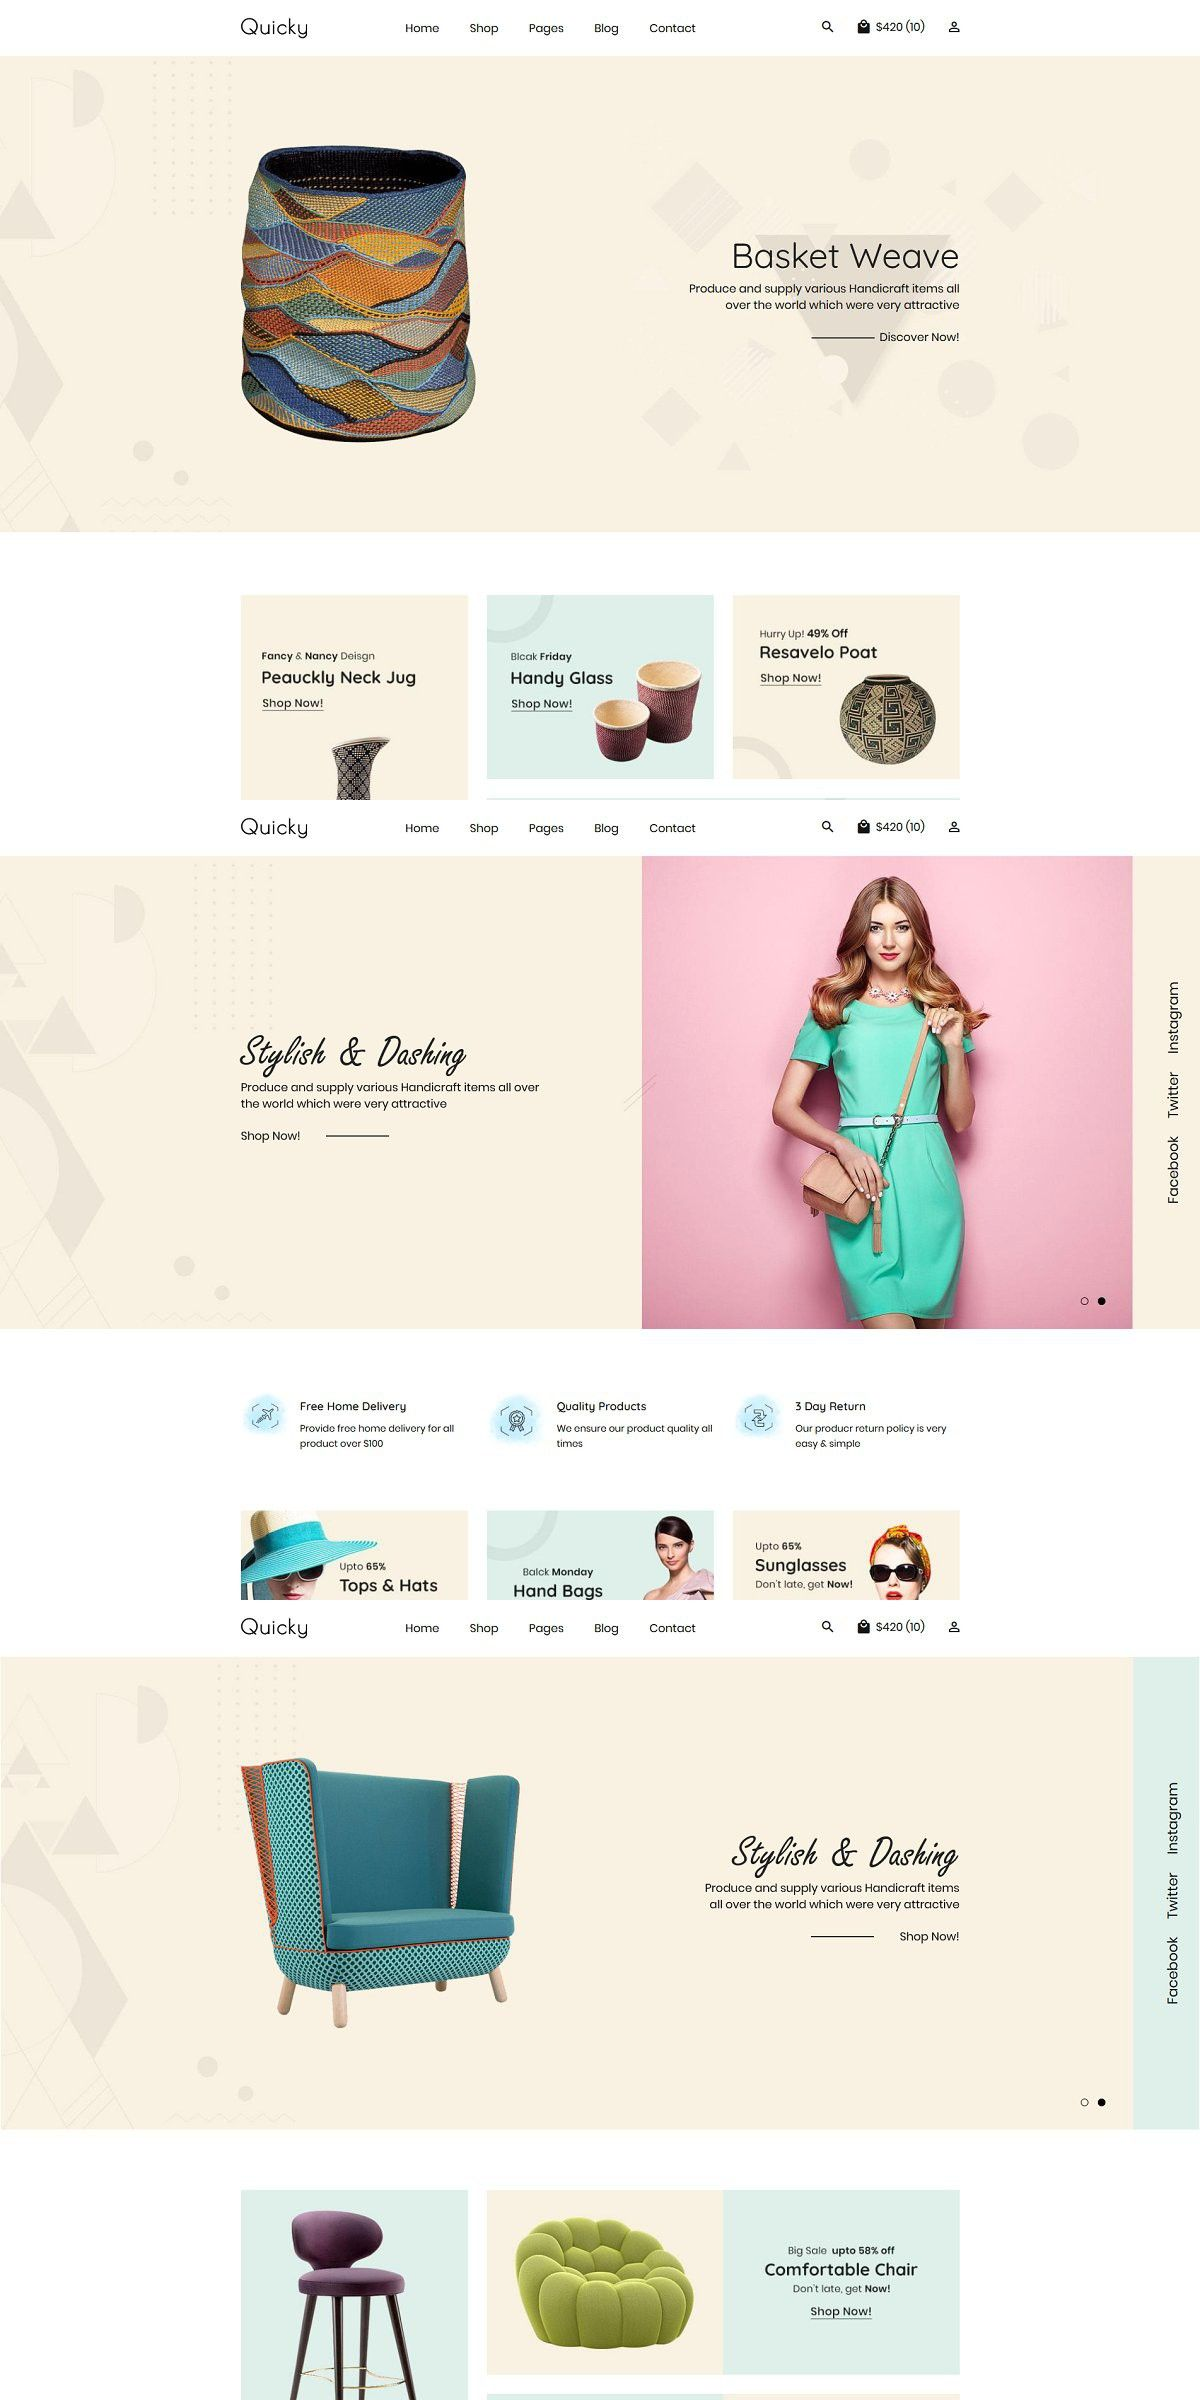 Quicky Minimal Ecommerce Template In 2020 Ecommerce Template Blog Layout Web Graphic Design